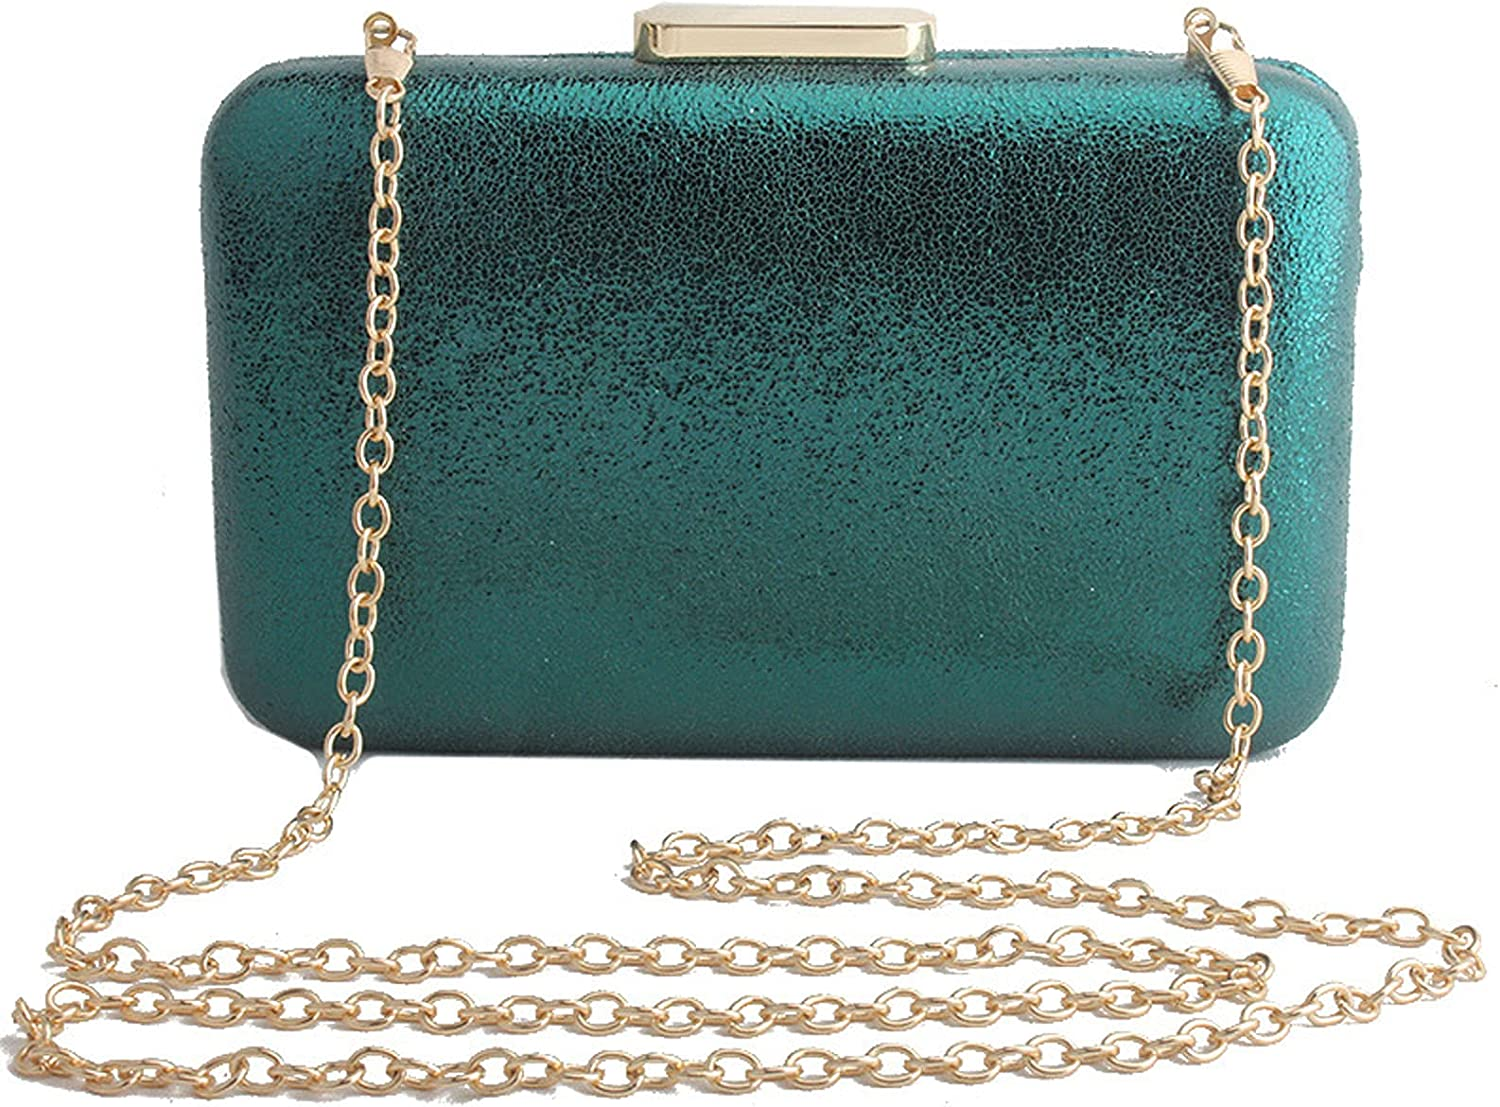 WANZPITS Womens Clutches and Evening Bags Cross-Body Bags Shoulder Handbags Purses for Wedding Cocktail Party,Green,19412cm